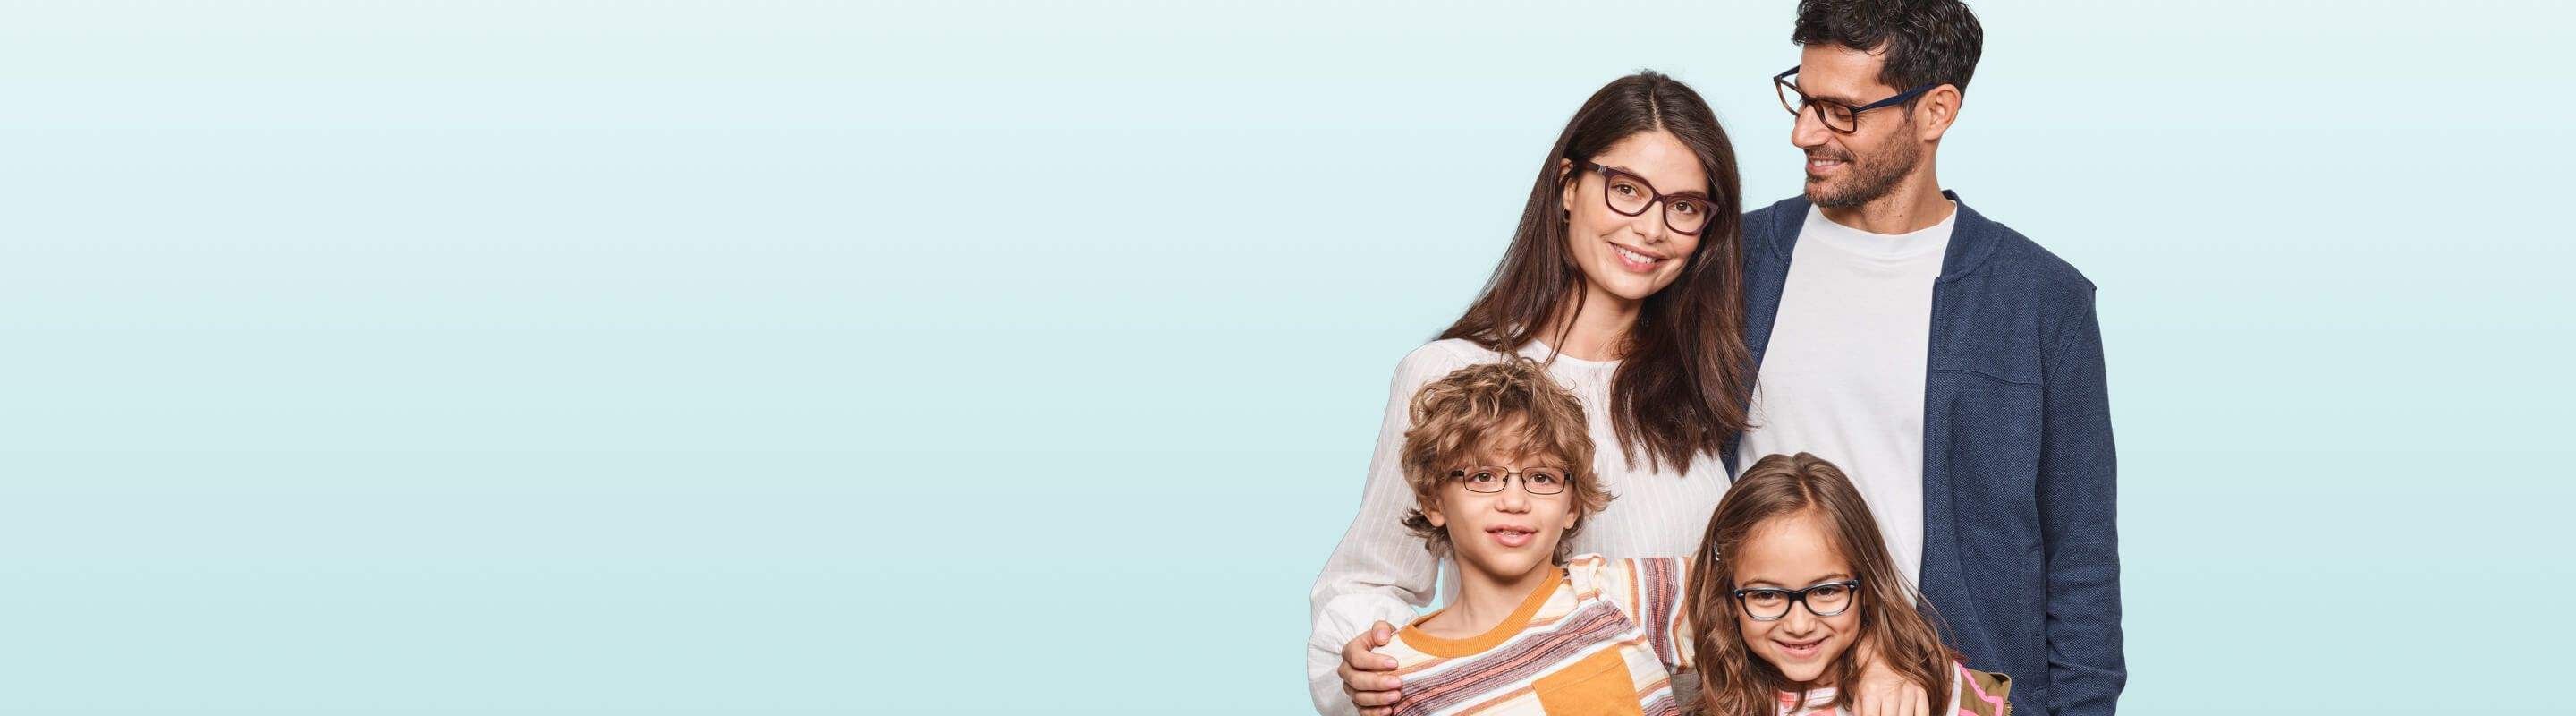 Family with eyeglasses